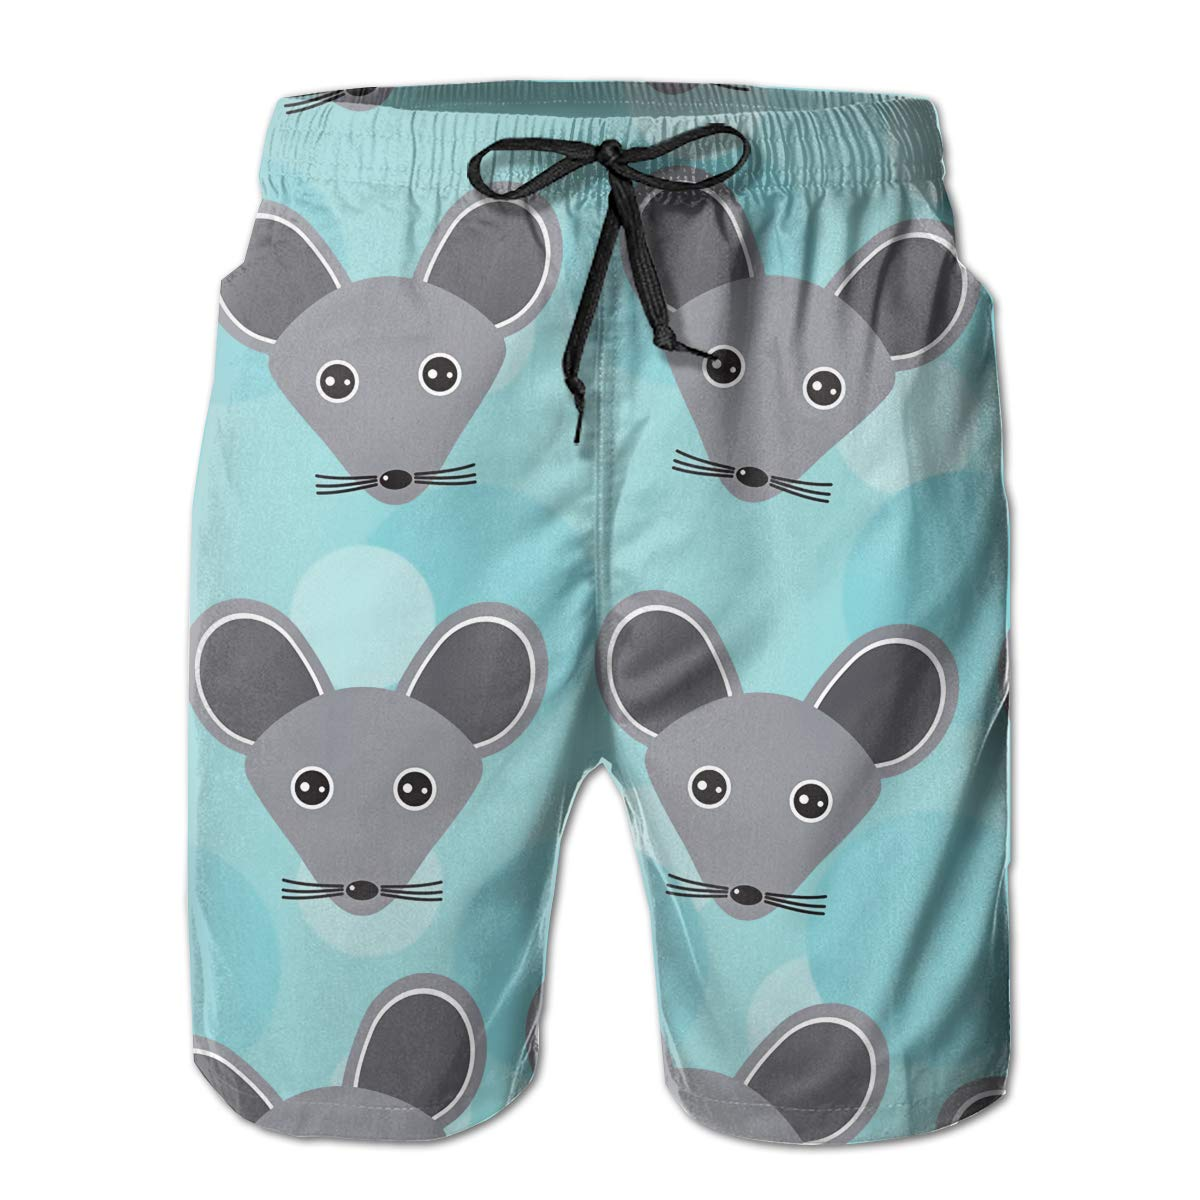 SARA NELL Mens Swim Trunks Mouse Pattern with Funny Cute Animal Face Surfing Beach Board Shorts Swimwear